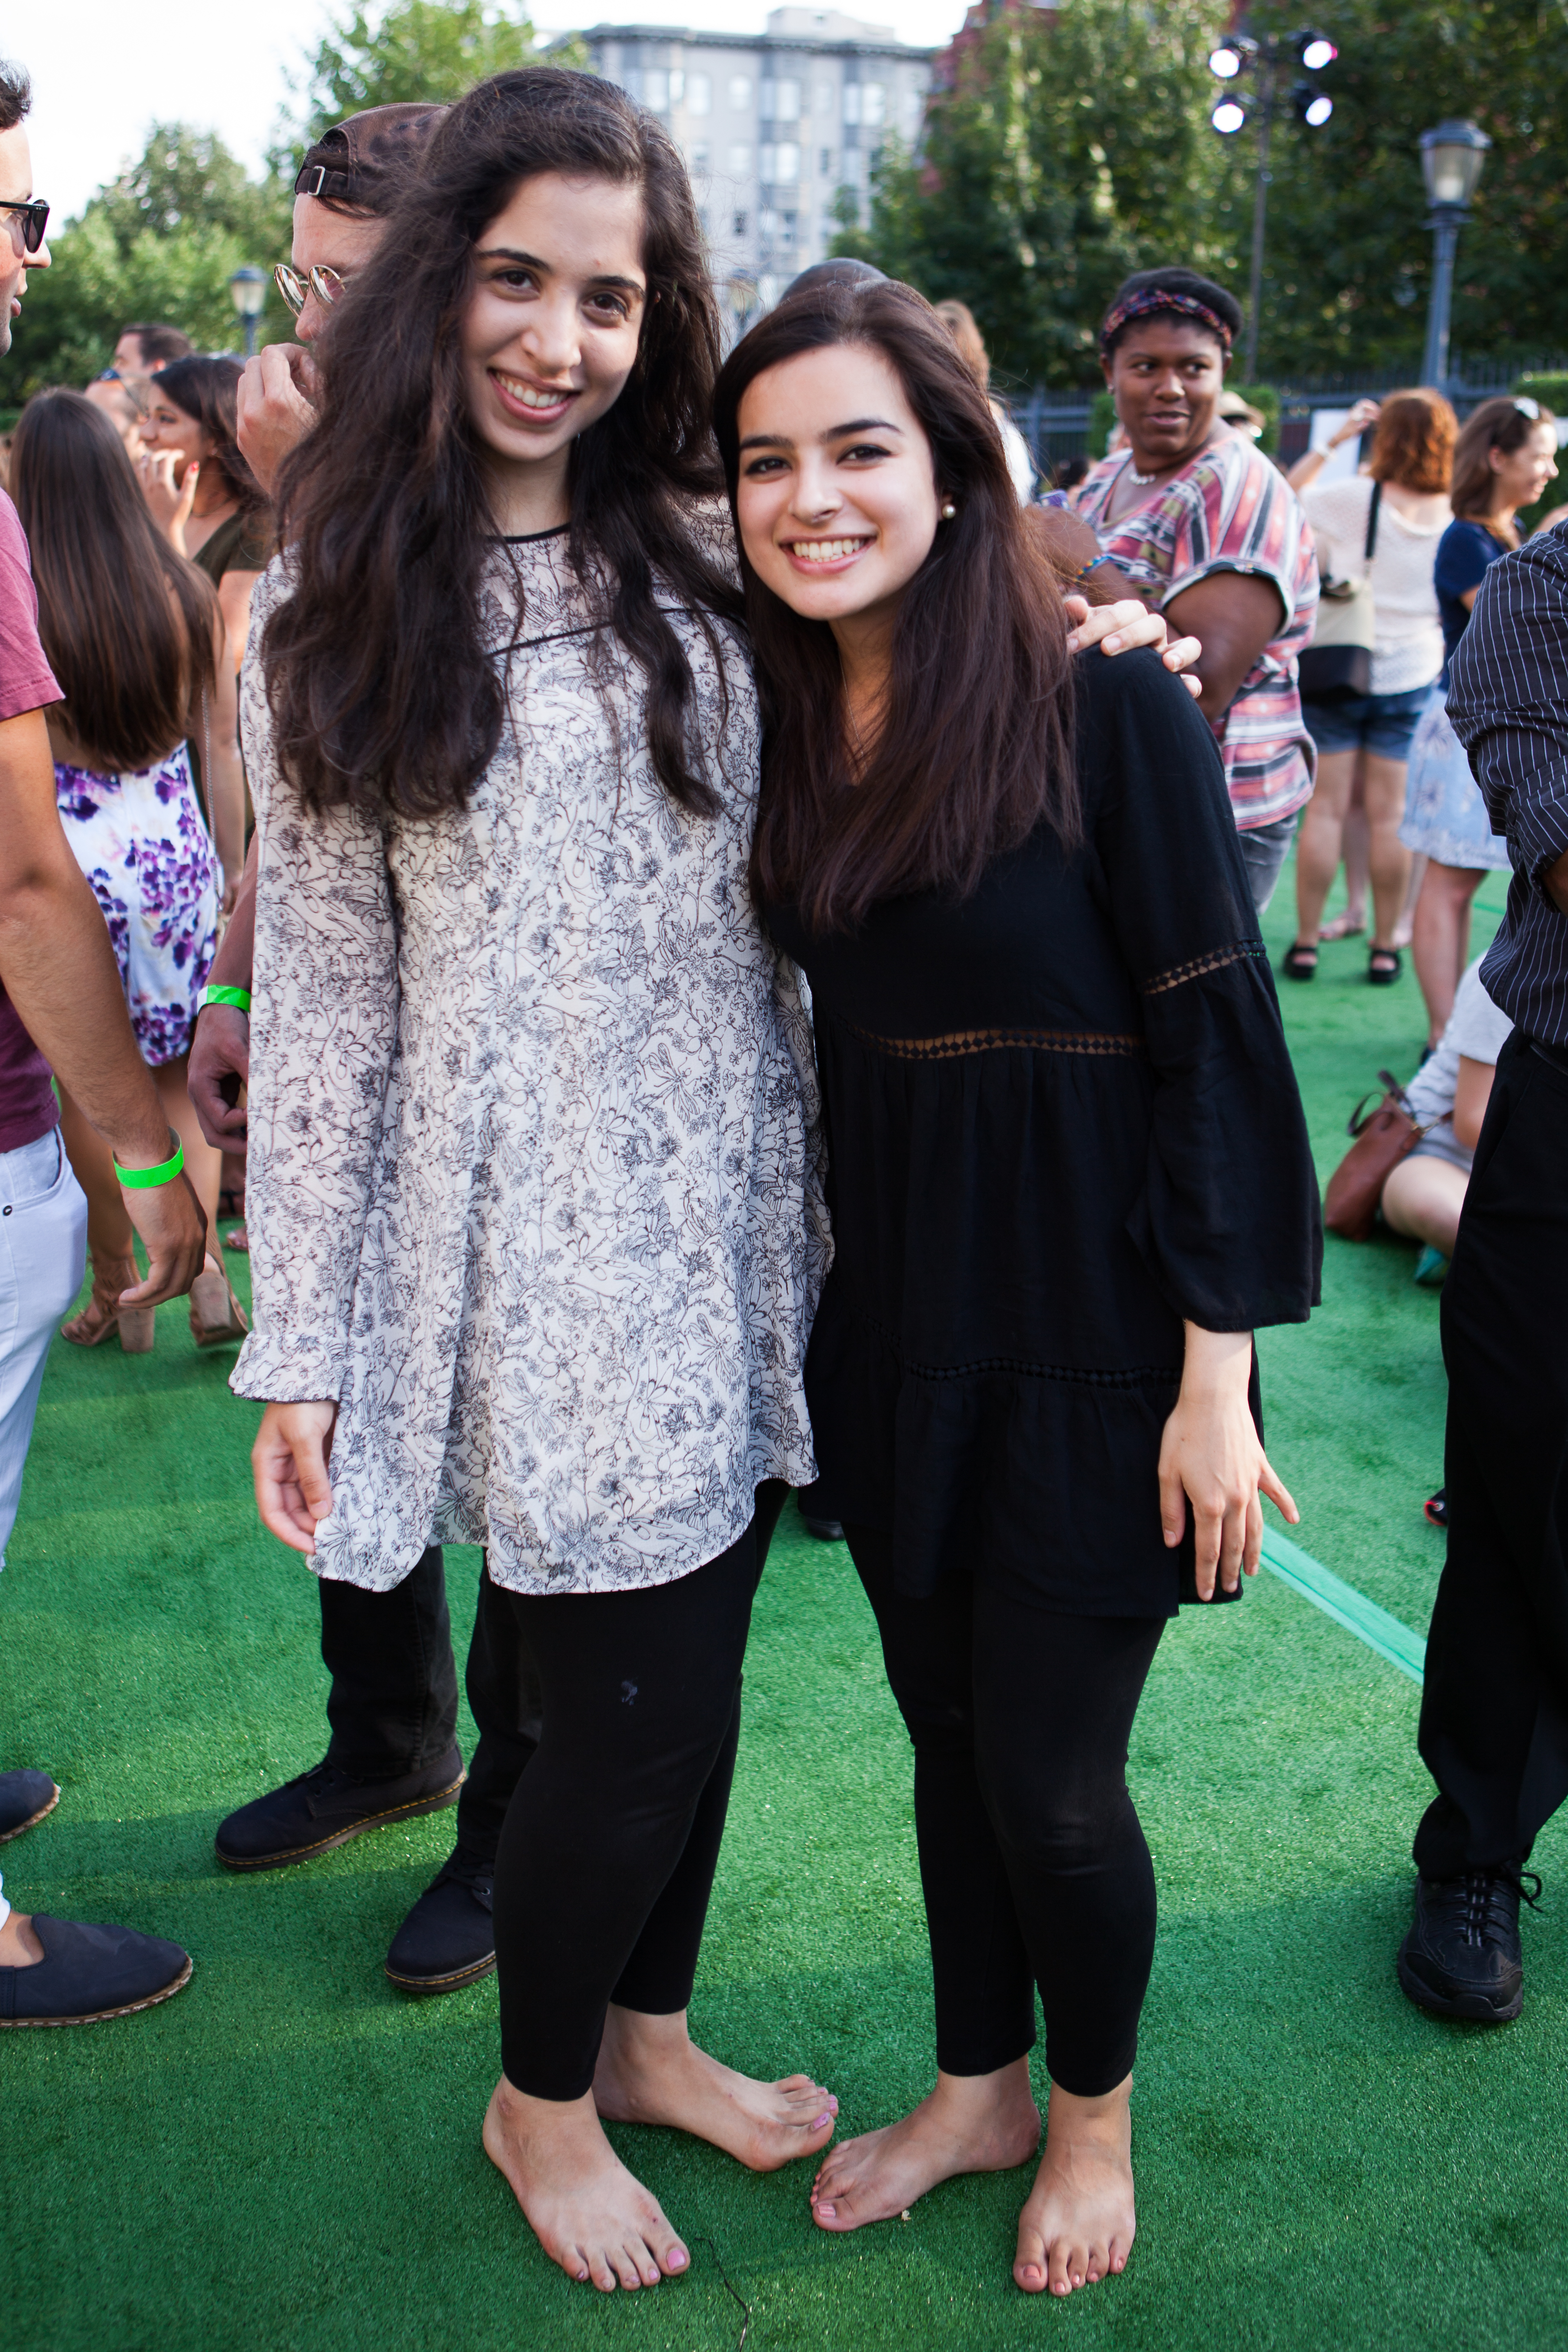 Zainab Feroze and Sarah Khan (Image: Jay Snap/ LaDexon Photographie)